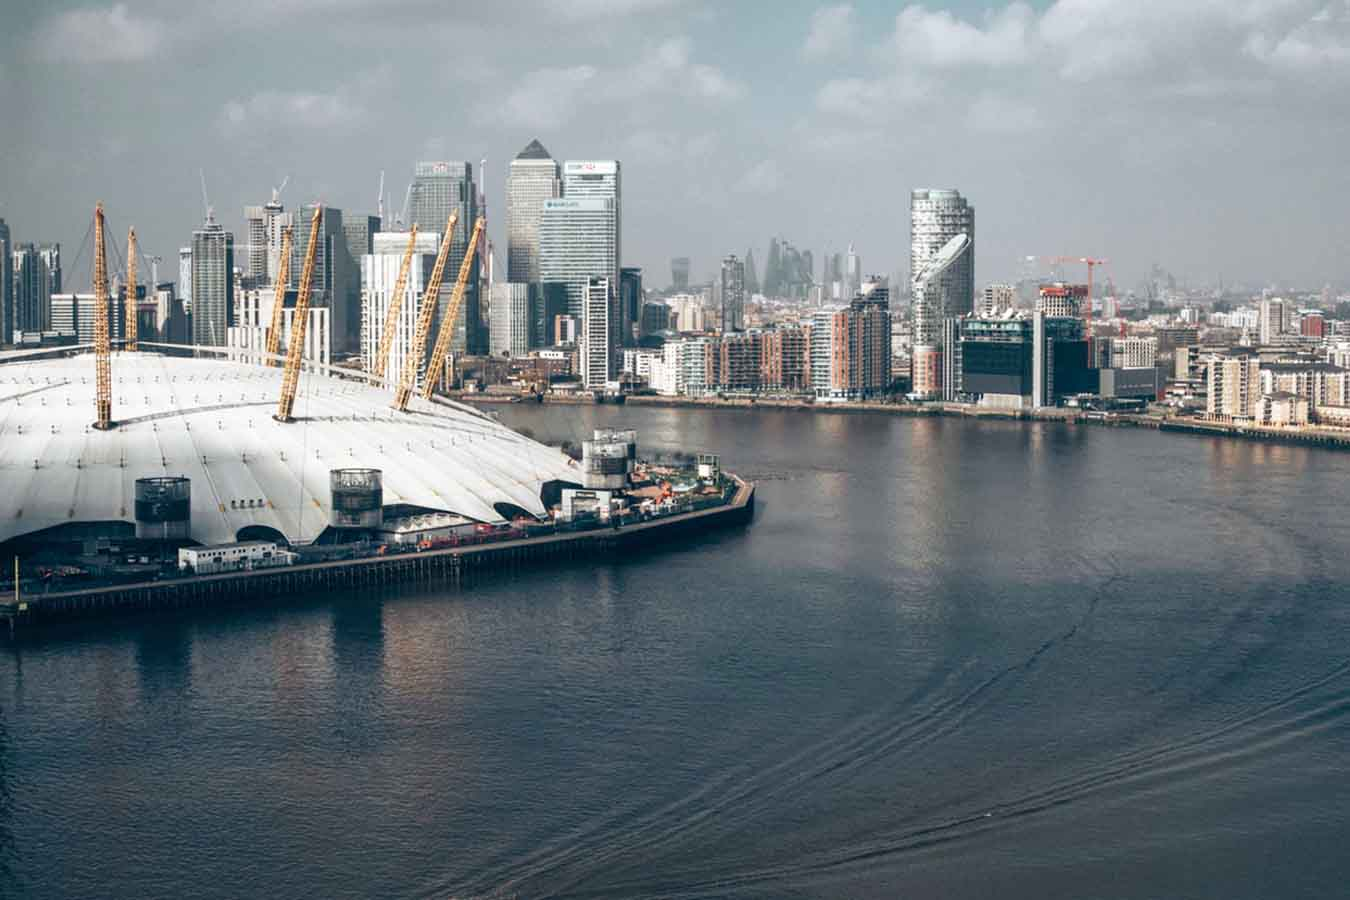 Millennium Dome. London, UK